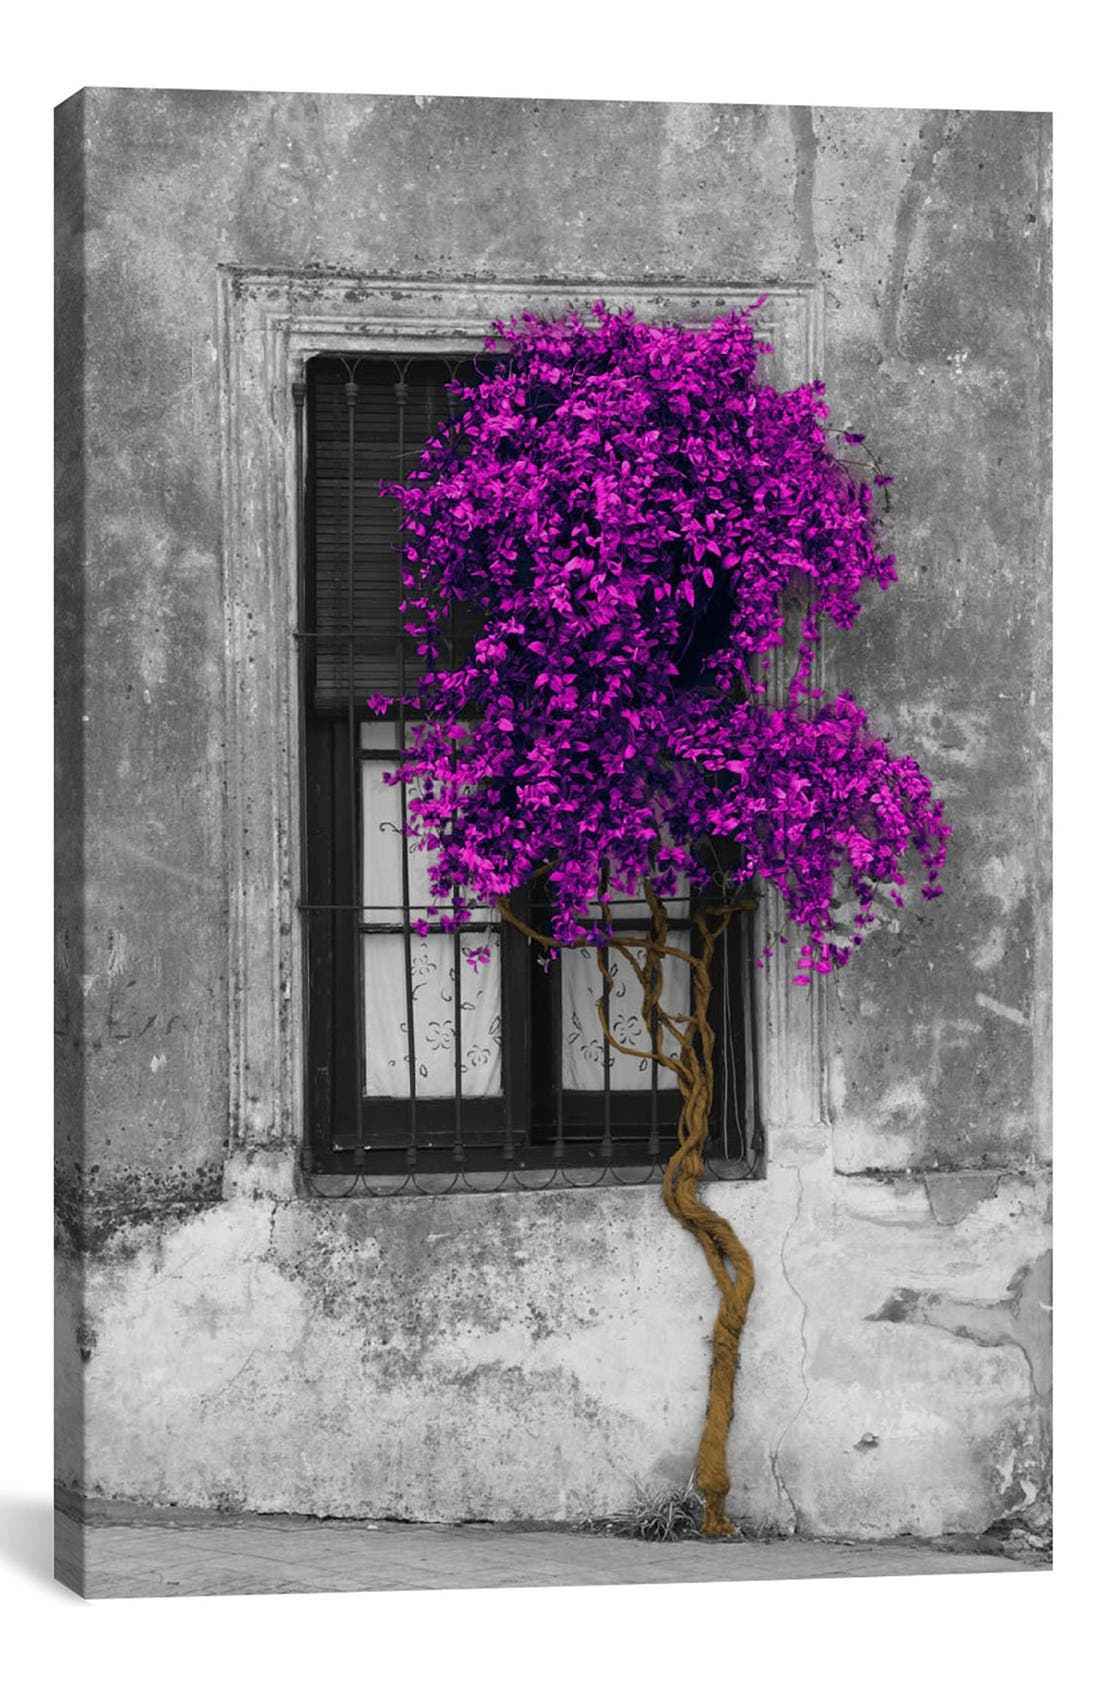 iCanvas 'Tree in Front of Window' Giclée Print Canvas Art